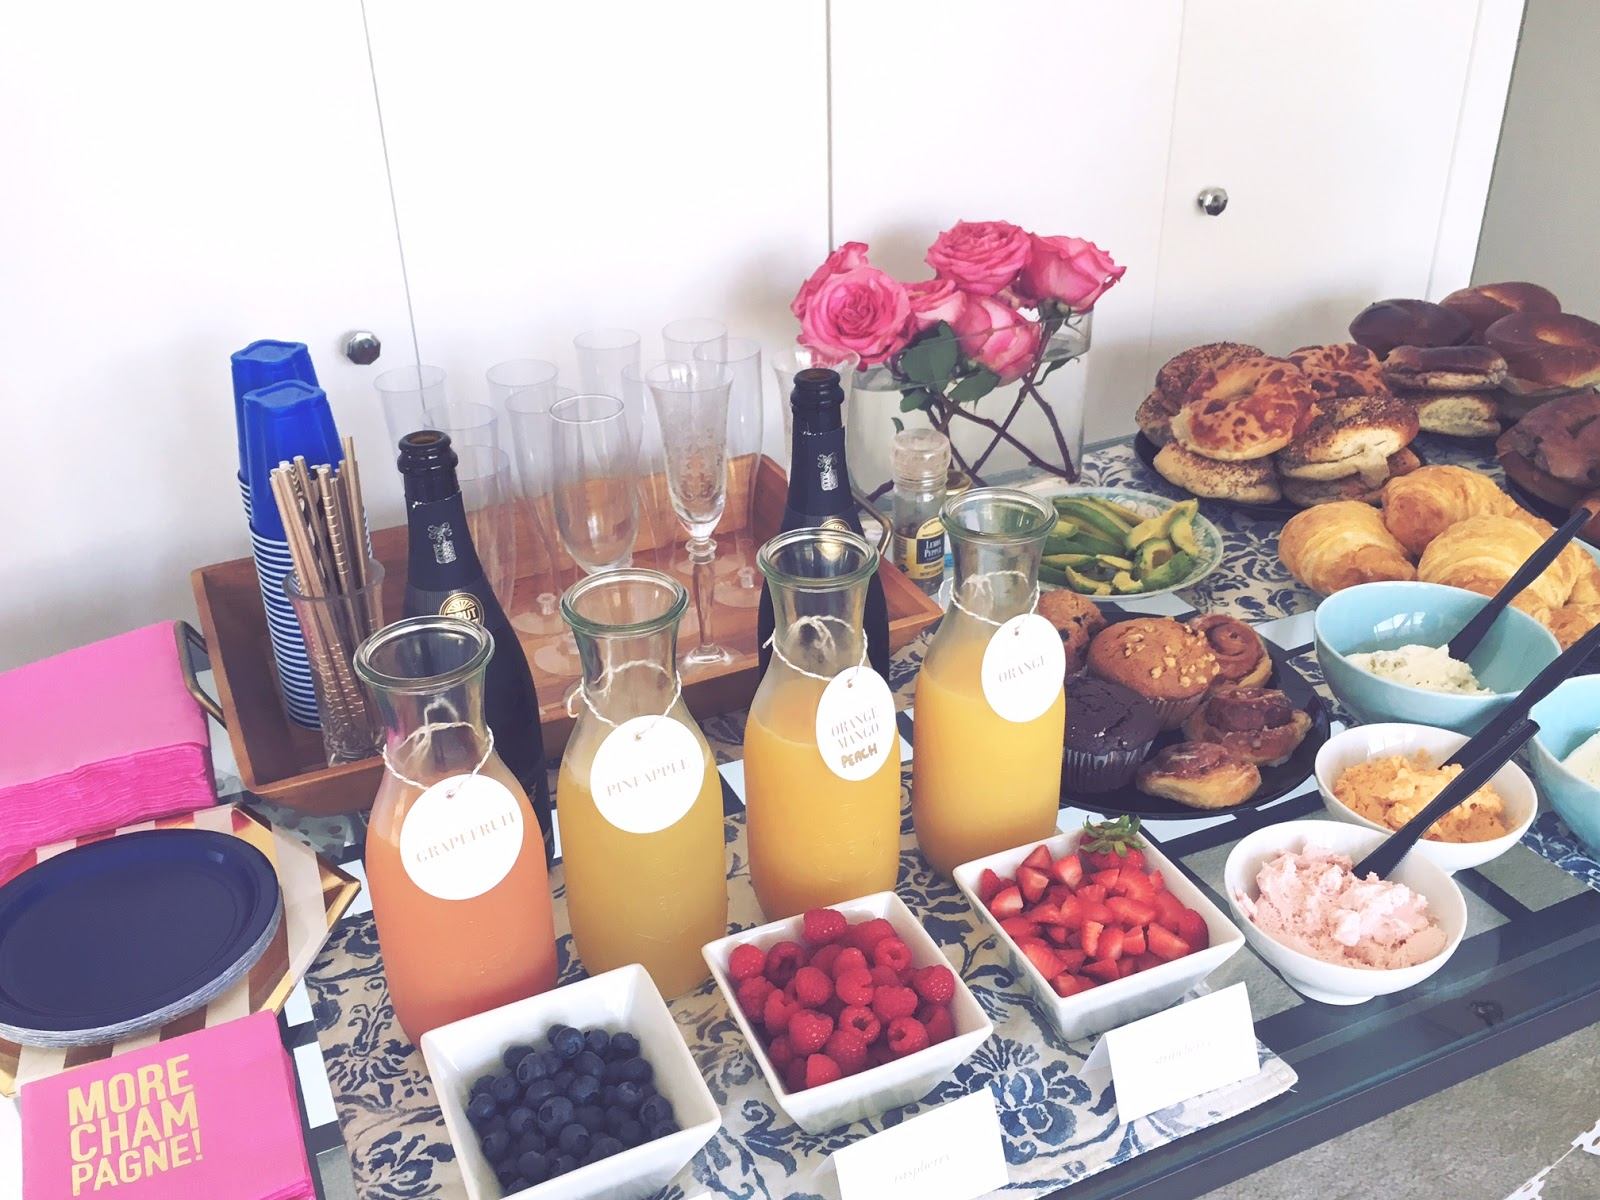 At home display of mimosas and bagels